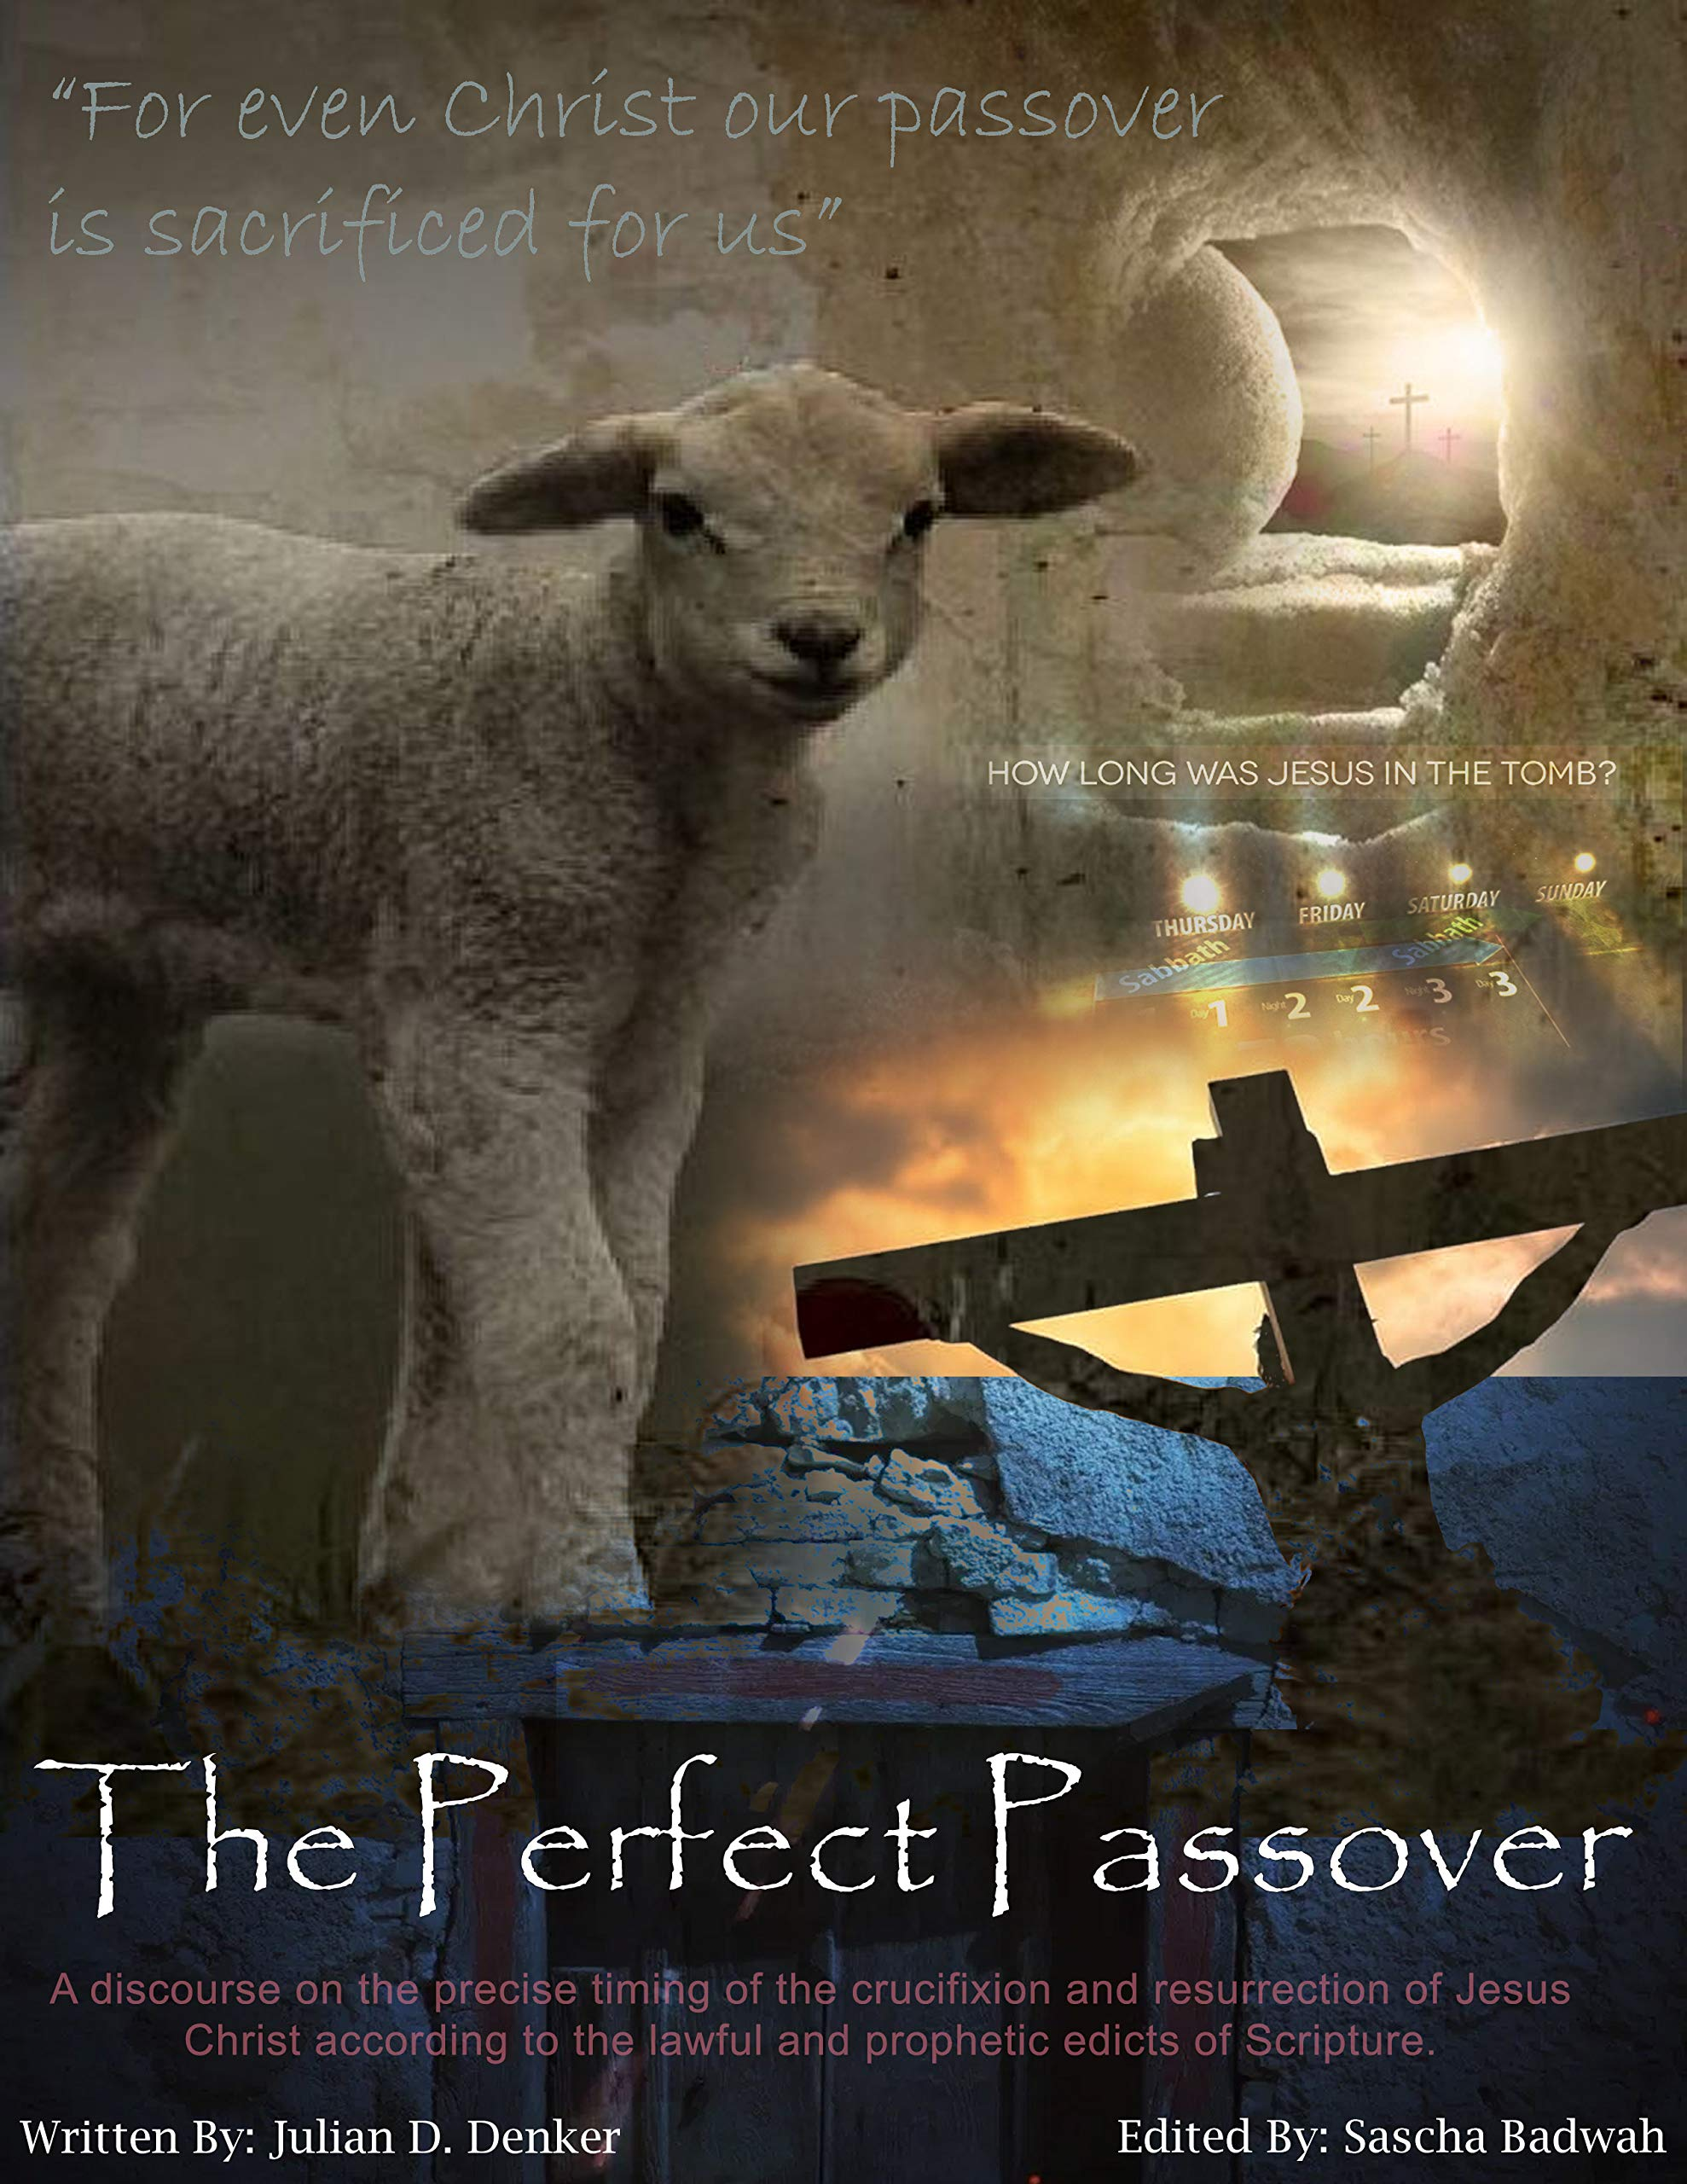 The Perfect Passover: A discourse on the precise timing of the crucifixion and resurrection of Jesus Christ according to the lawful and prophetic edicts of Scripture.